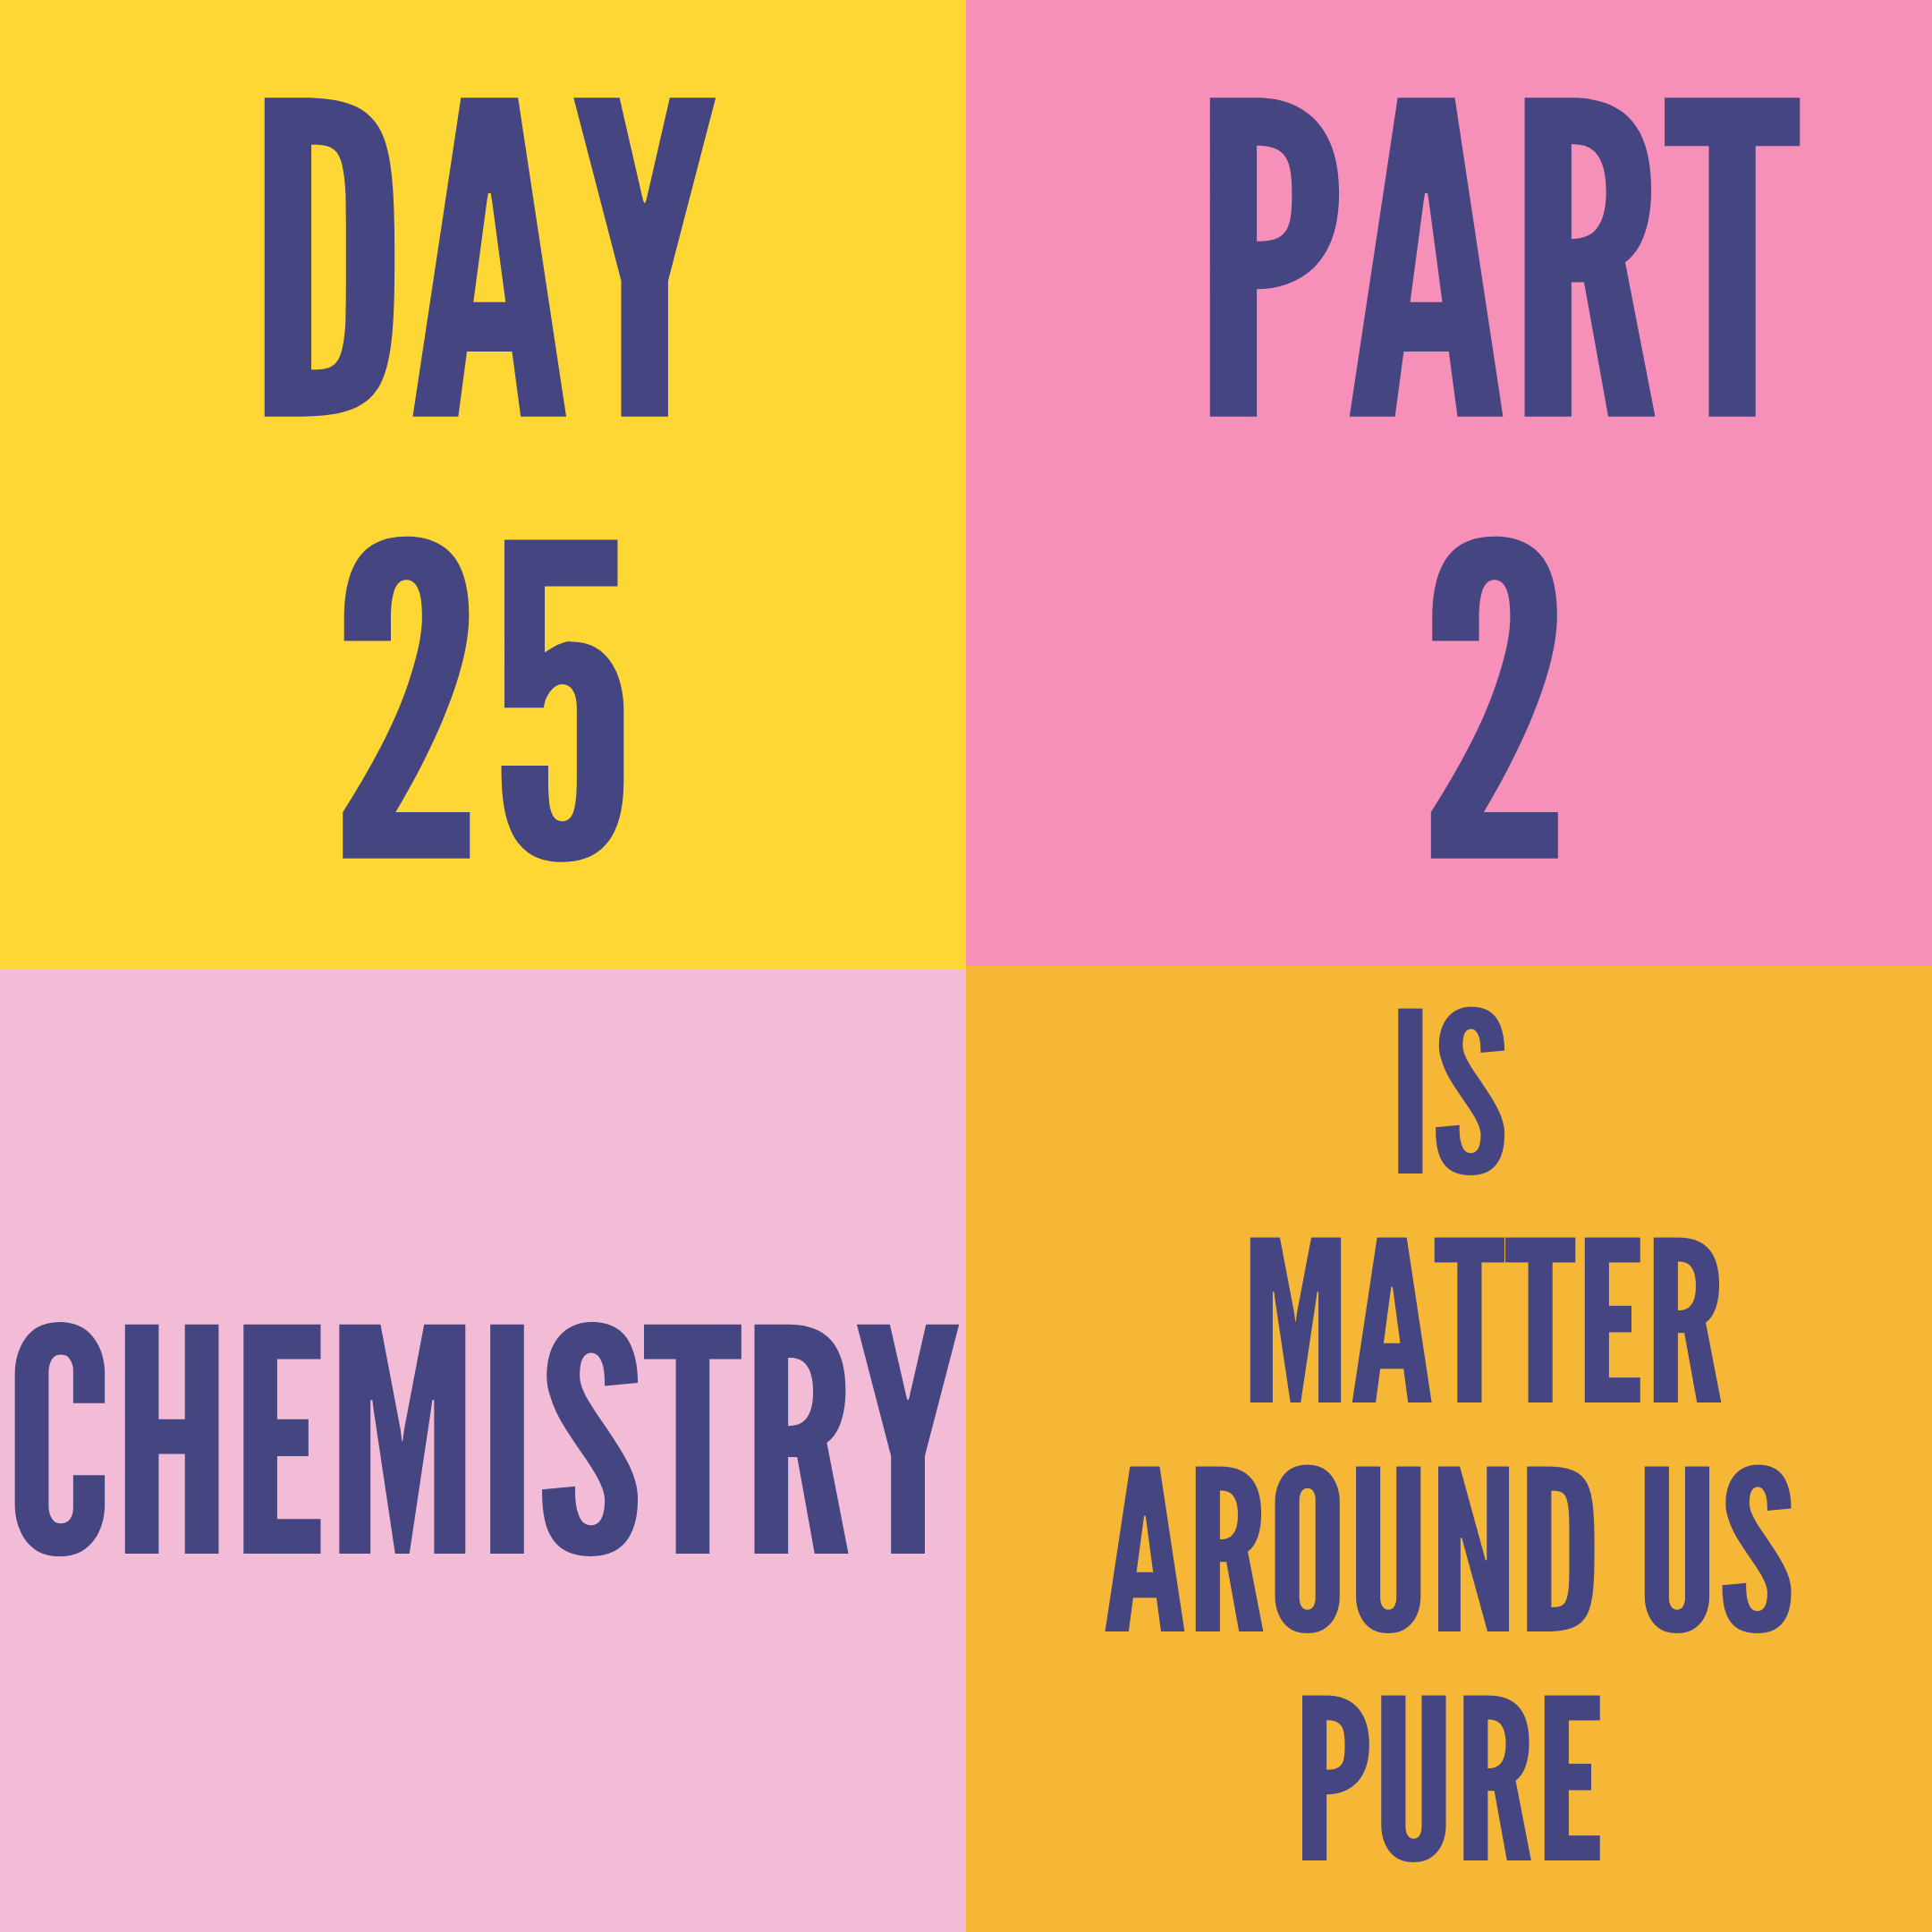 DAY-25 PART-2 IS MATTER AROUND US PURE